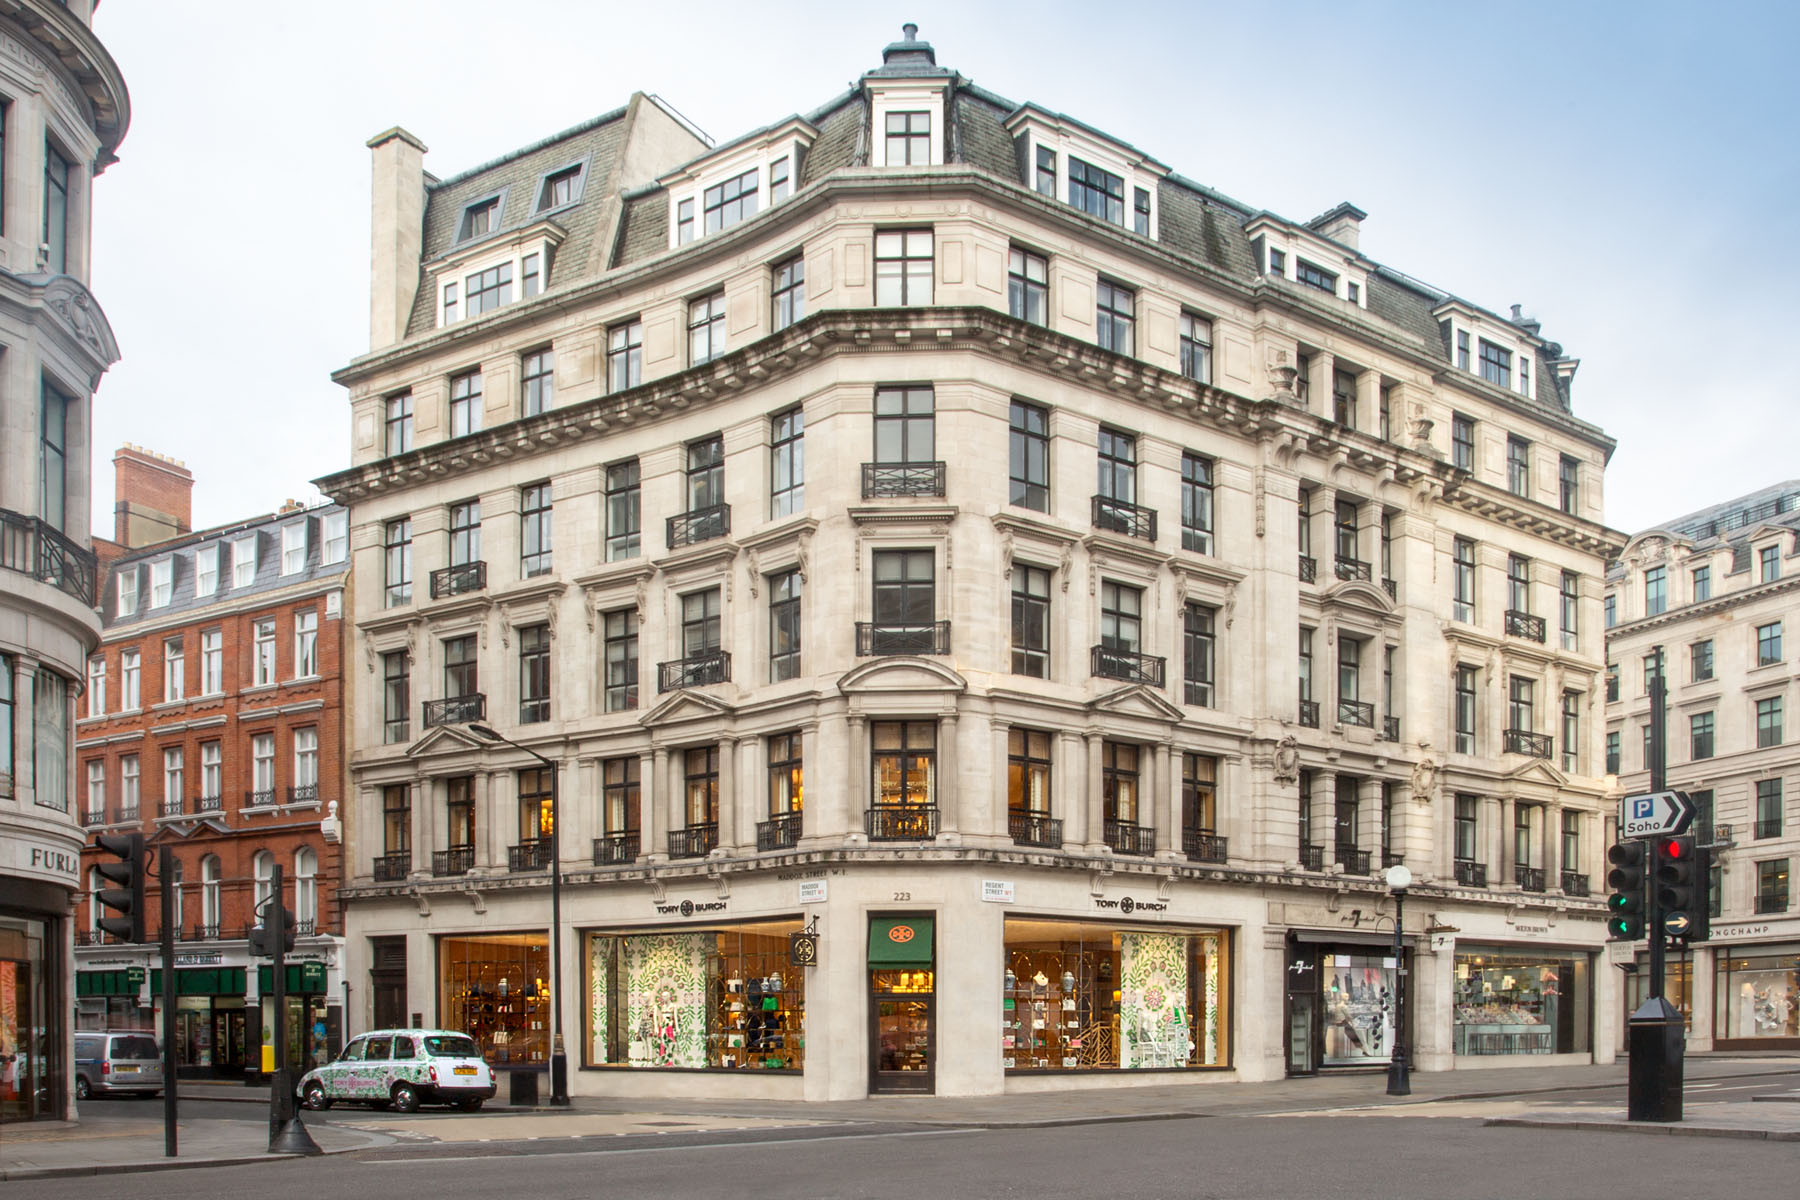 Tory-Burch-Regent-Street-london-store-scout-the-impression-02